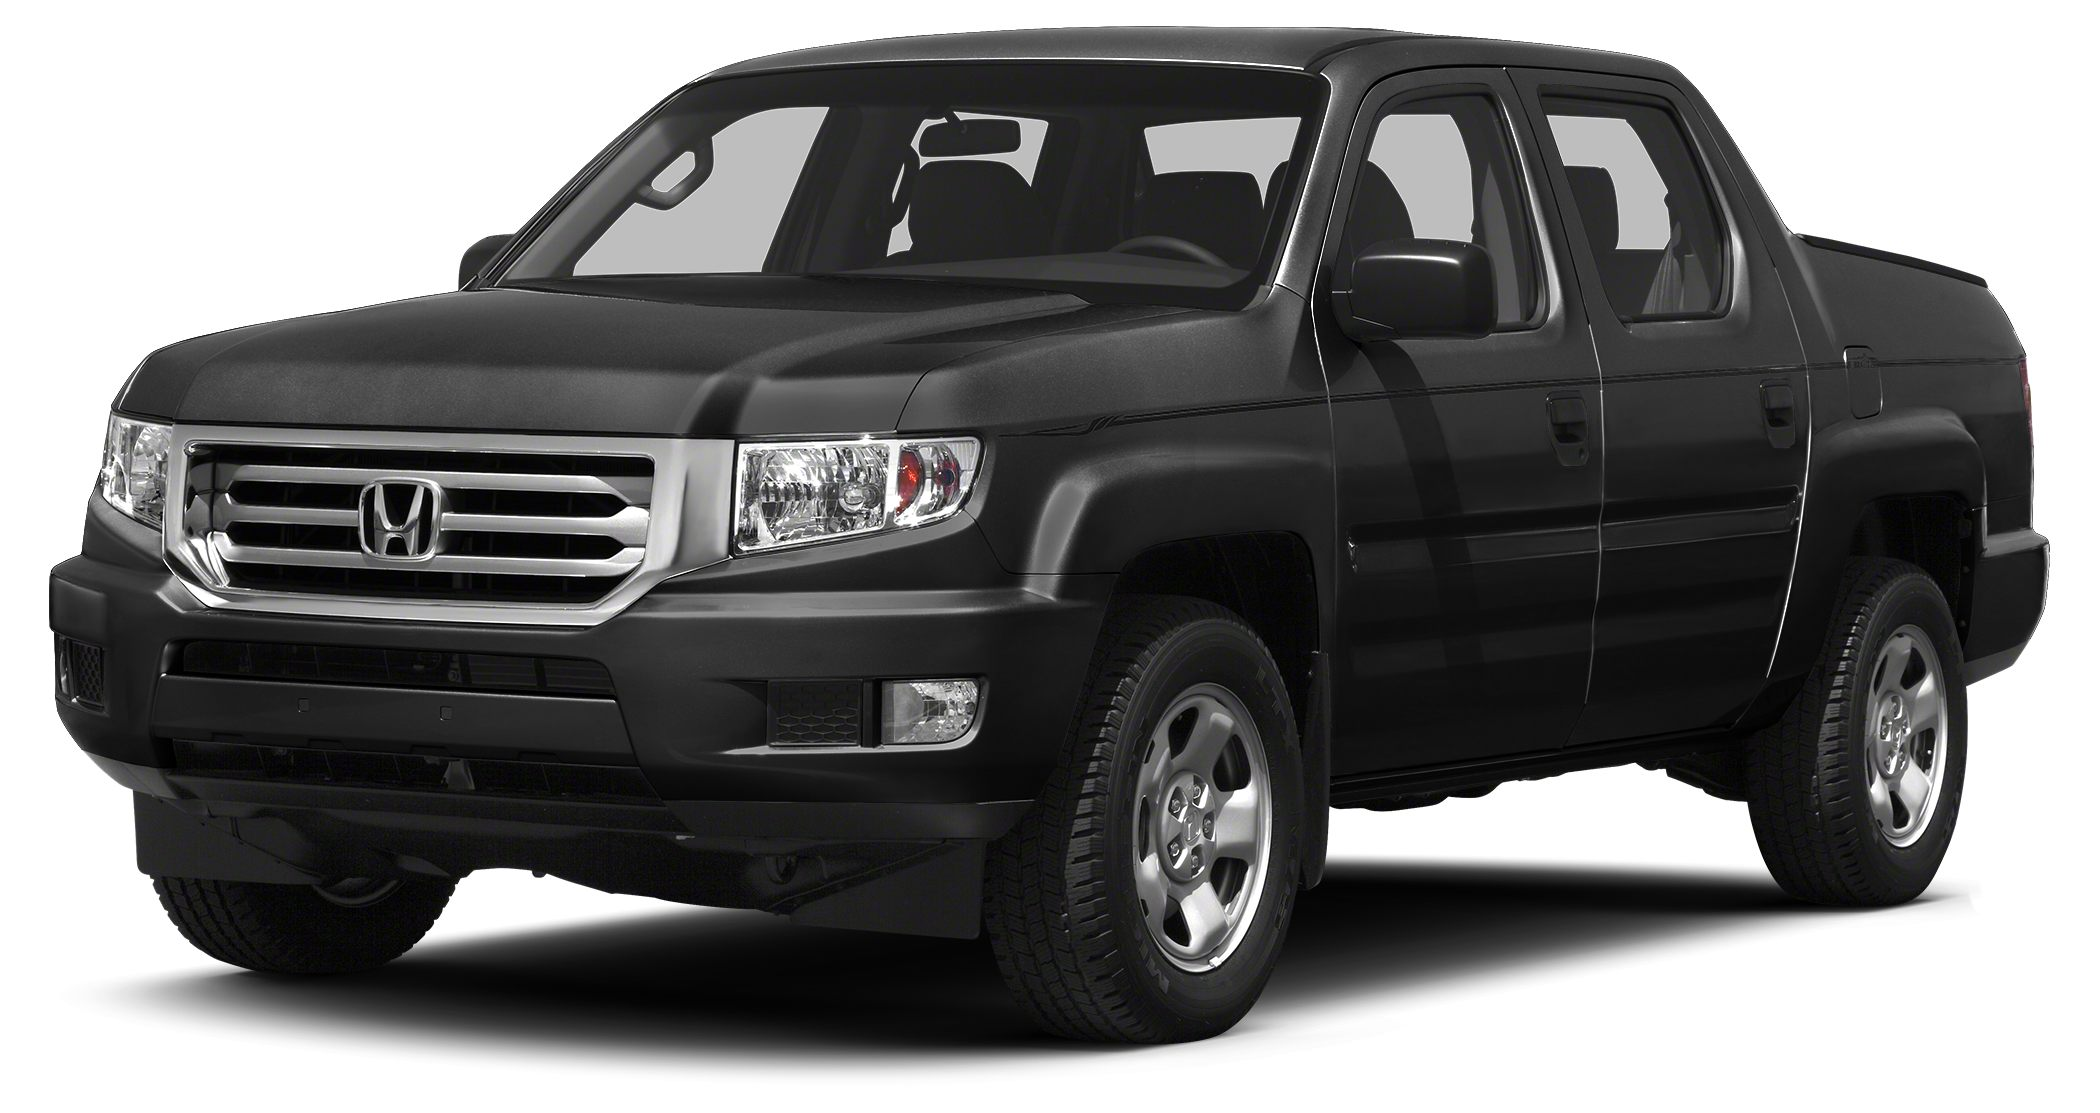 2013 Honda Ridgeline RT AWD4x4 RT Crystal Black on Black interior Reverse Camera and so much